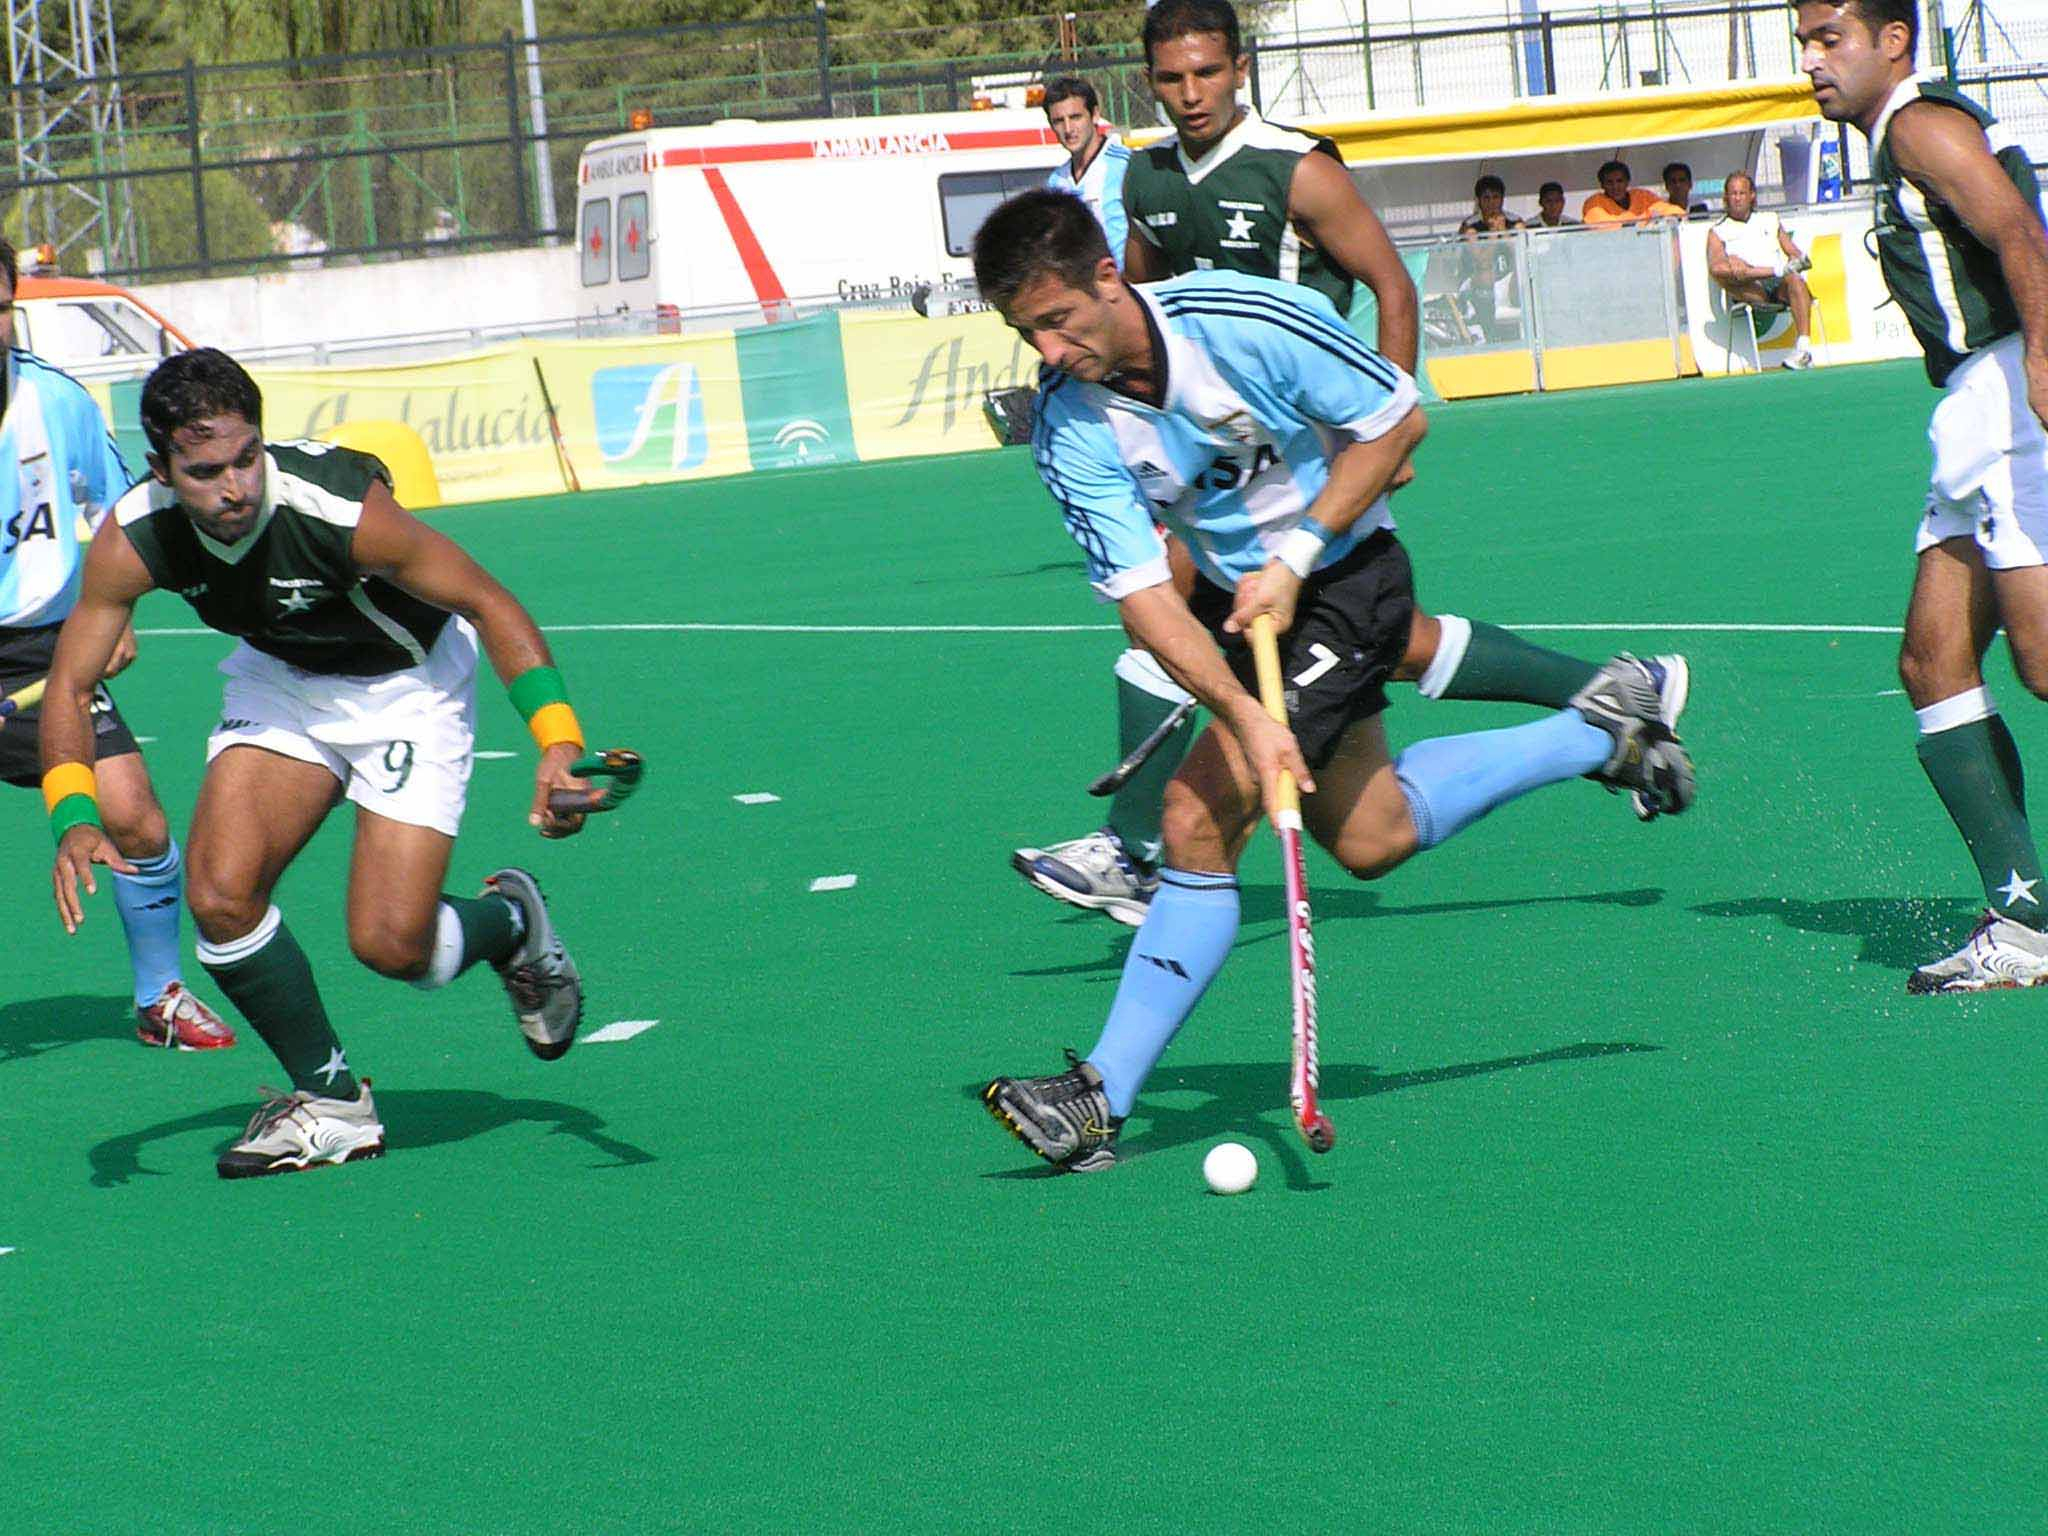 A Hockey Match